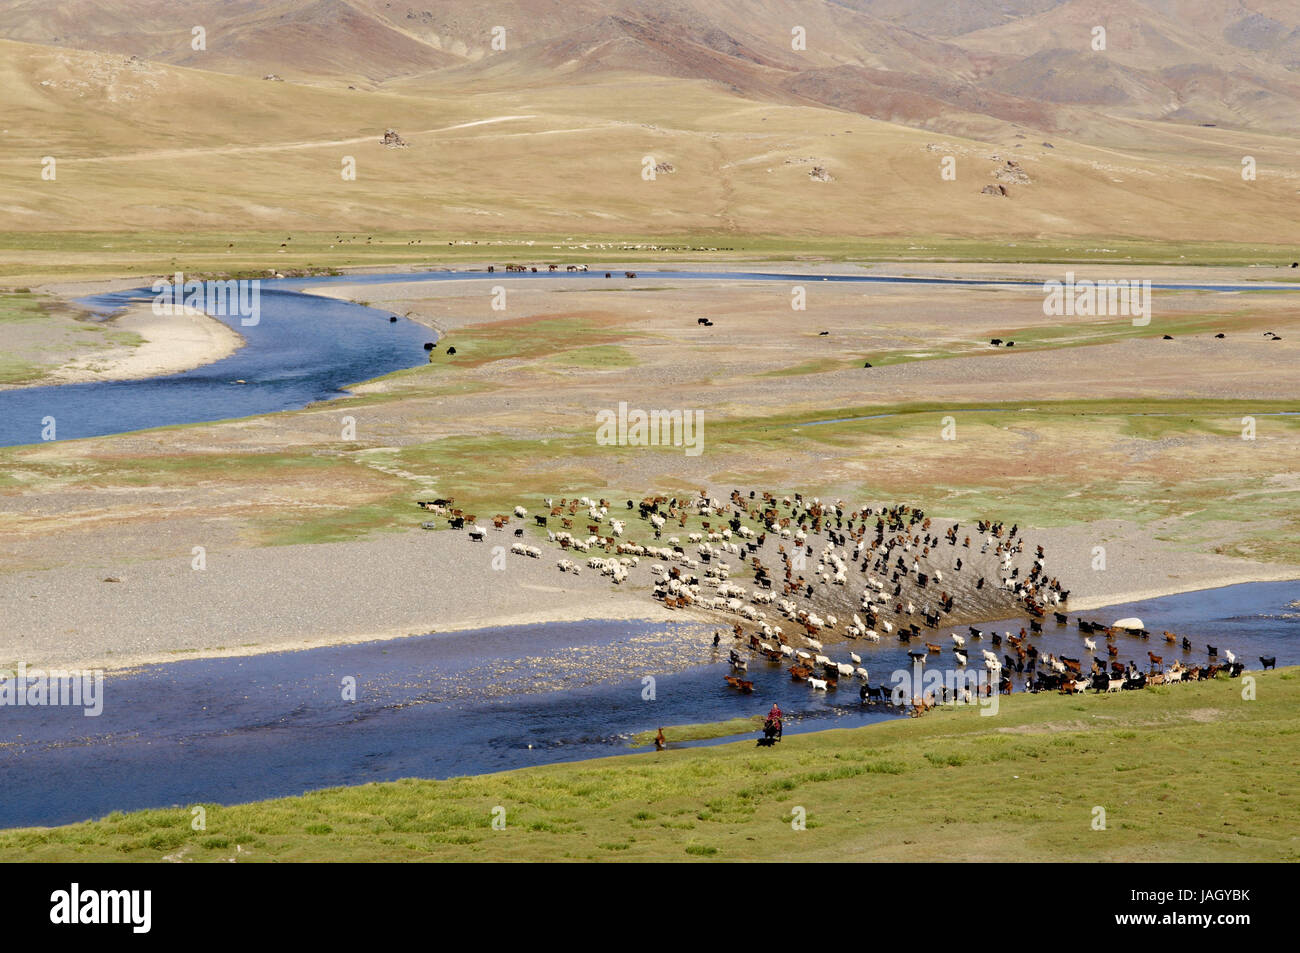 Mongolia,Central Asia,Ovorkhangai province,historical Orkhon valley,UNESCO world heritage,Orkhon flux,flock of sheep,pasture, Stock Photo